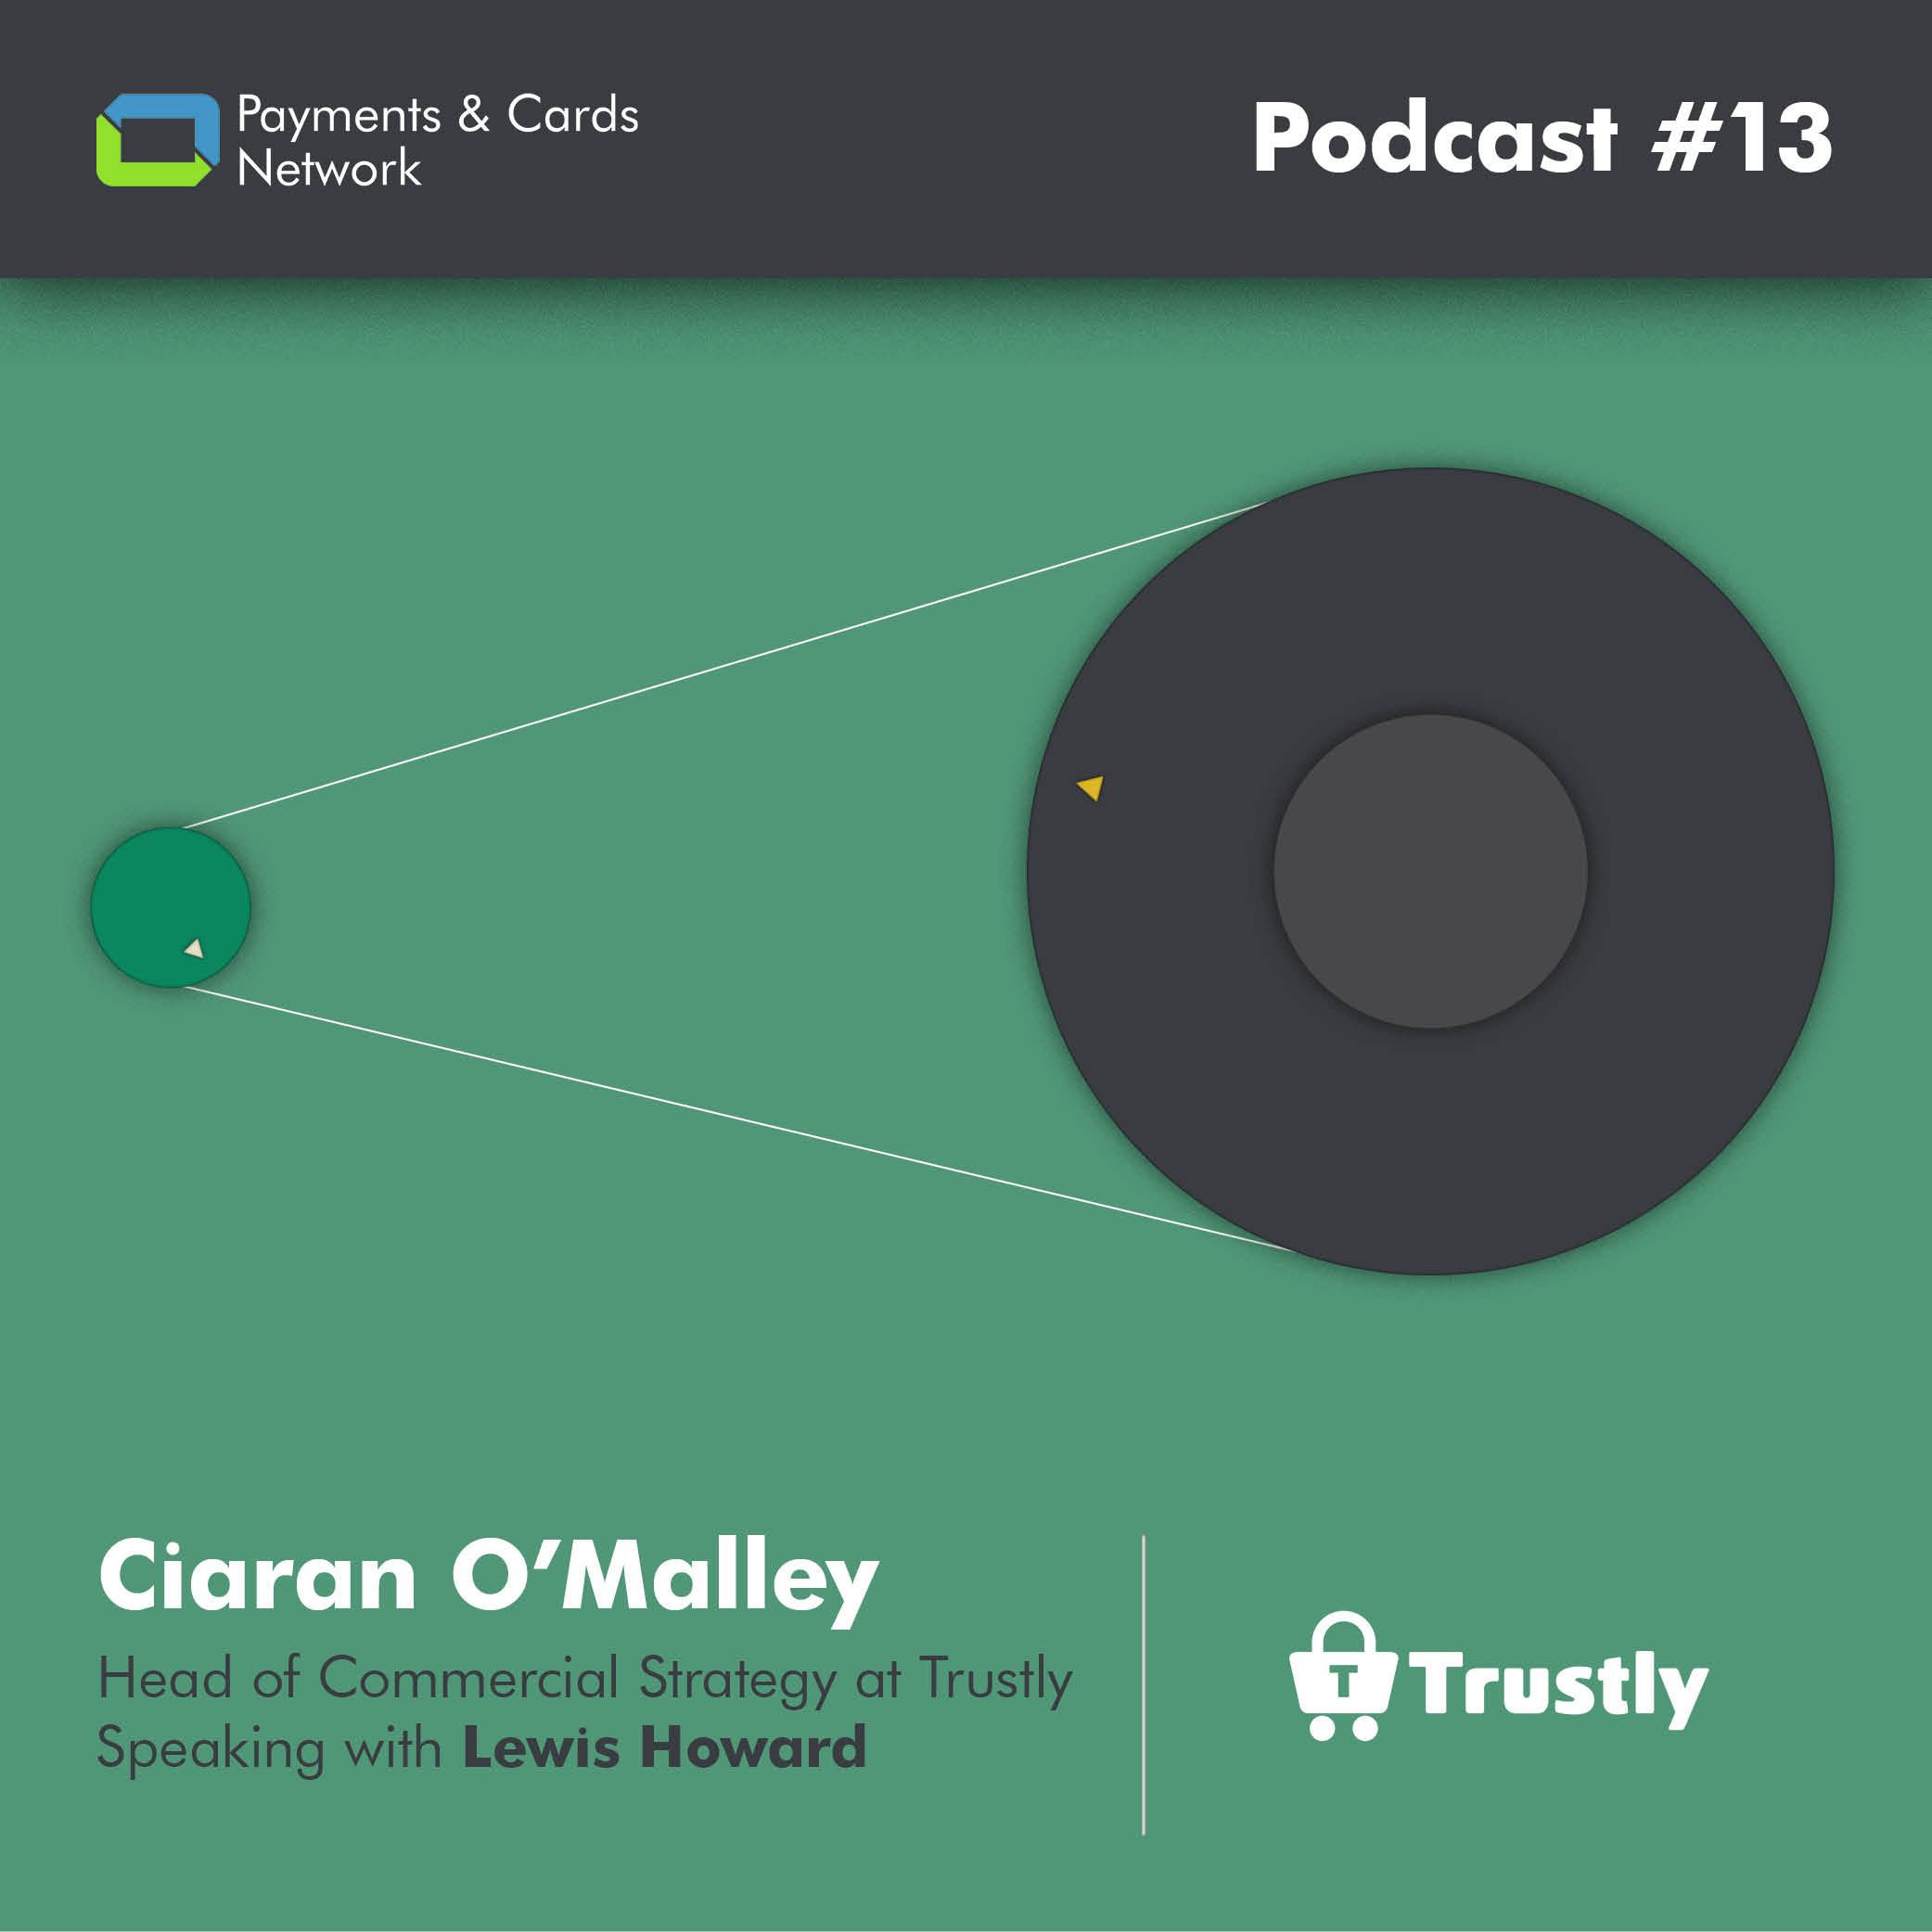 Trustly Articles - Payments & Cards Network Podcast